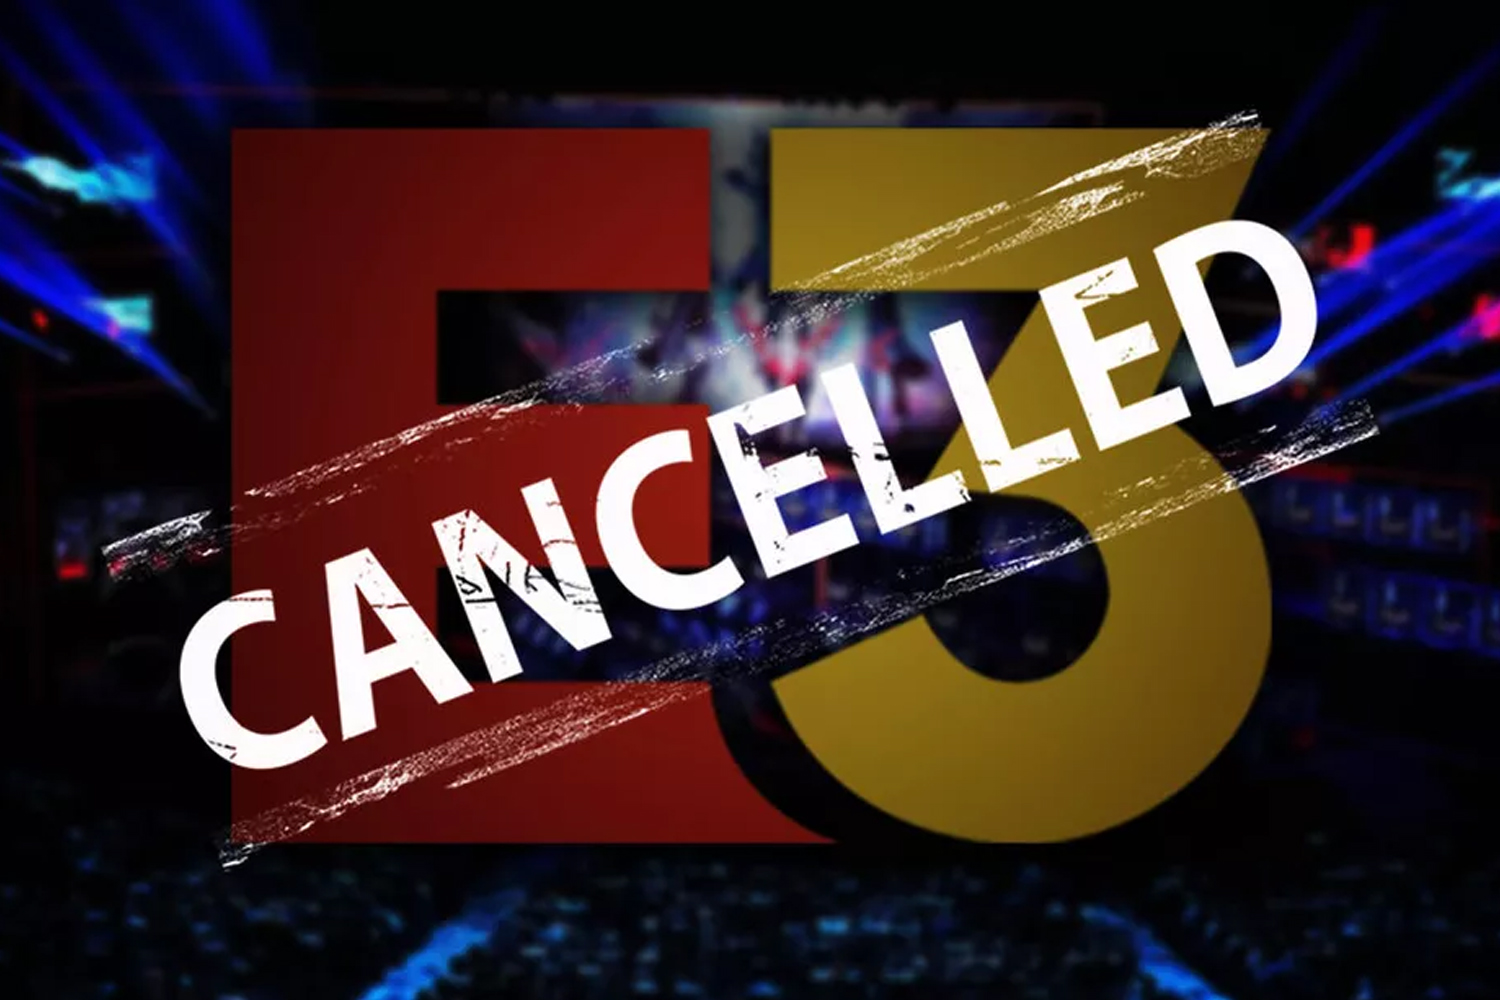 E3 2020 Is Officially Canceled Due To Coronavirus Concerns